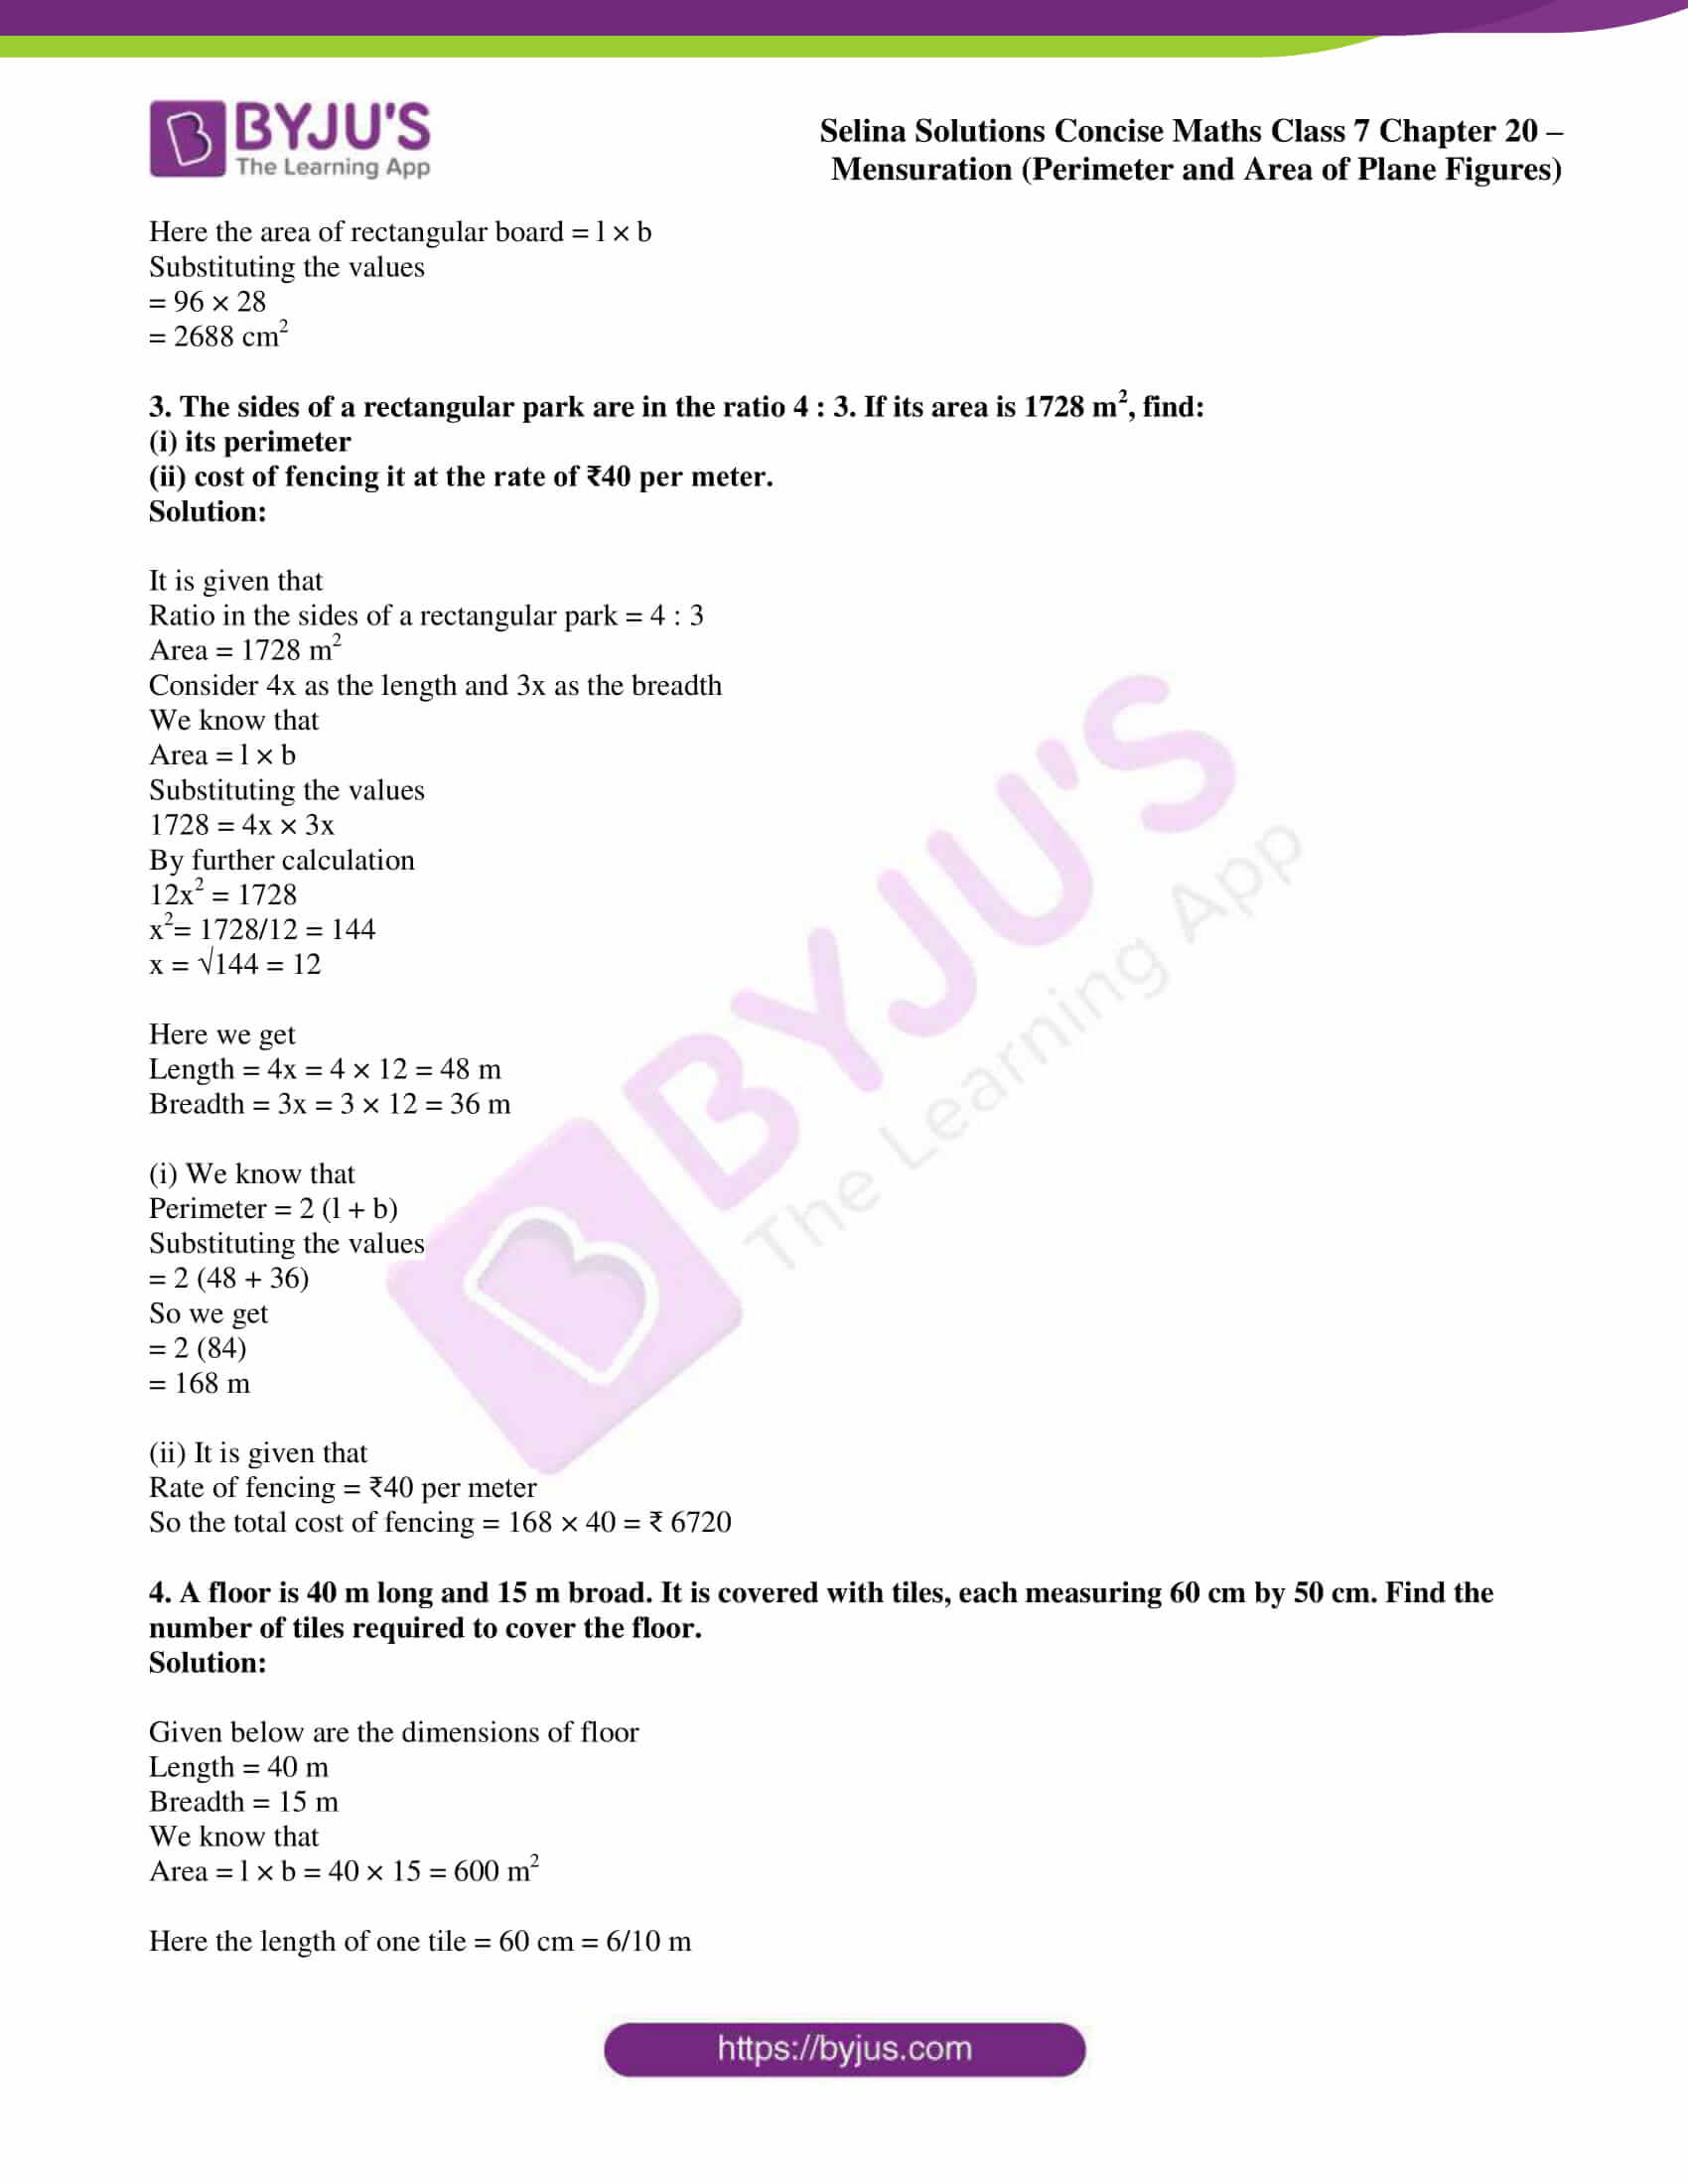 selina sol concise maths class 7 chapter 20 ex b 2